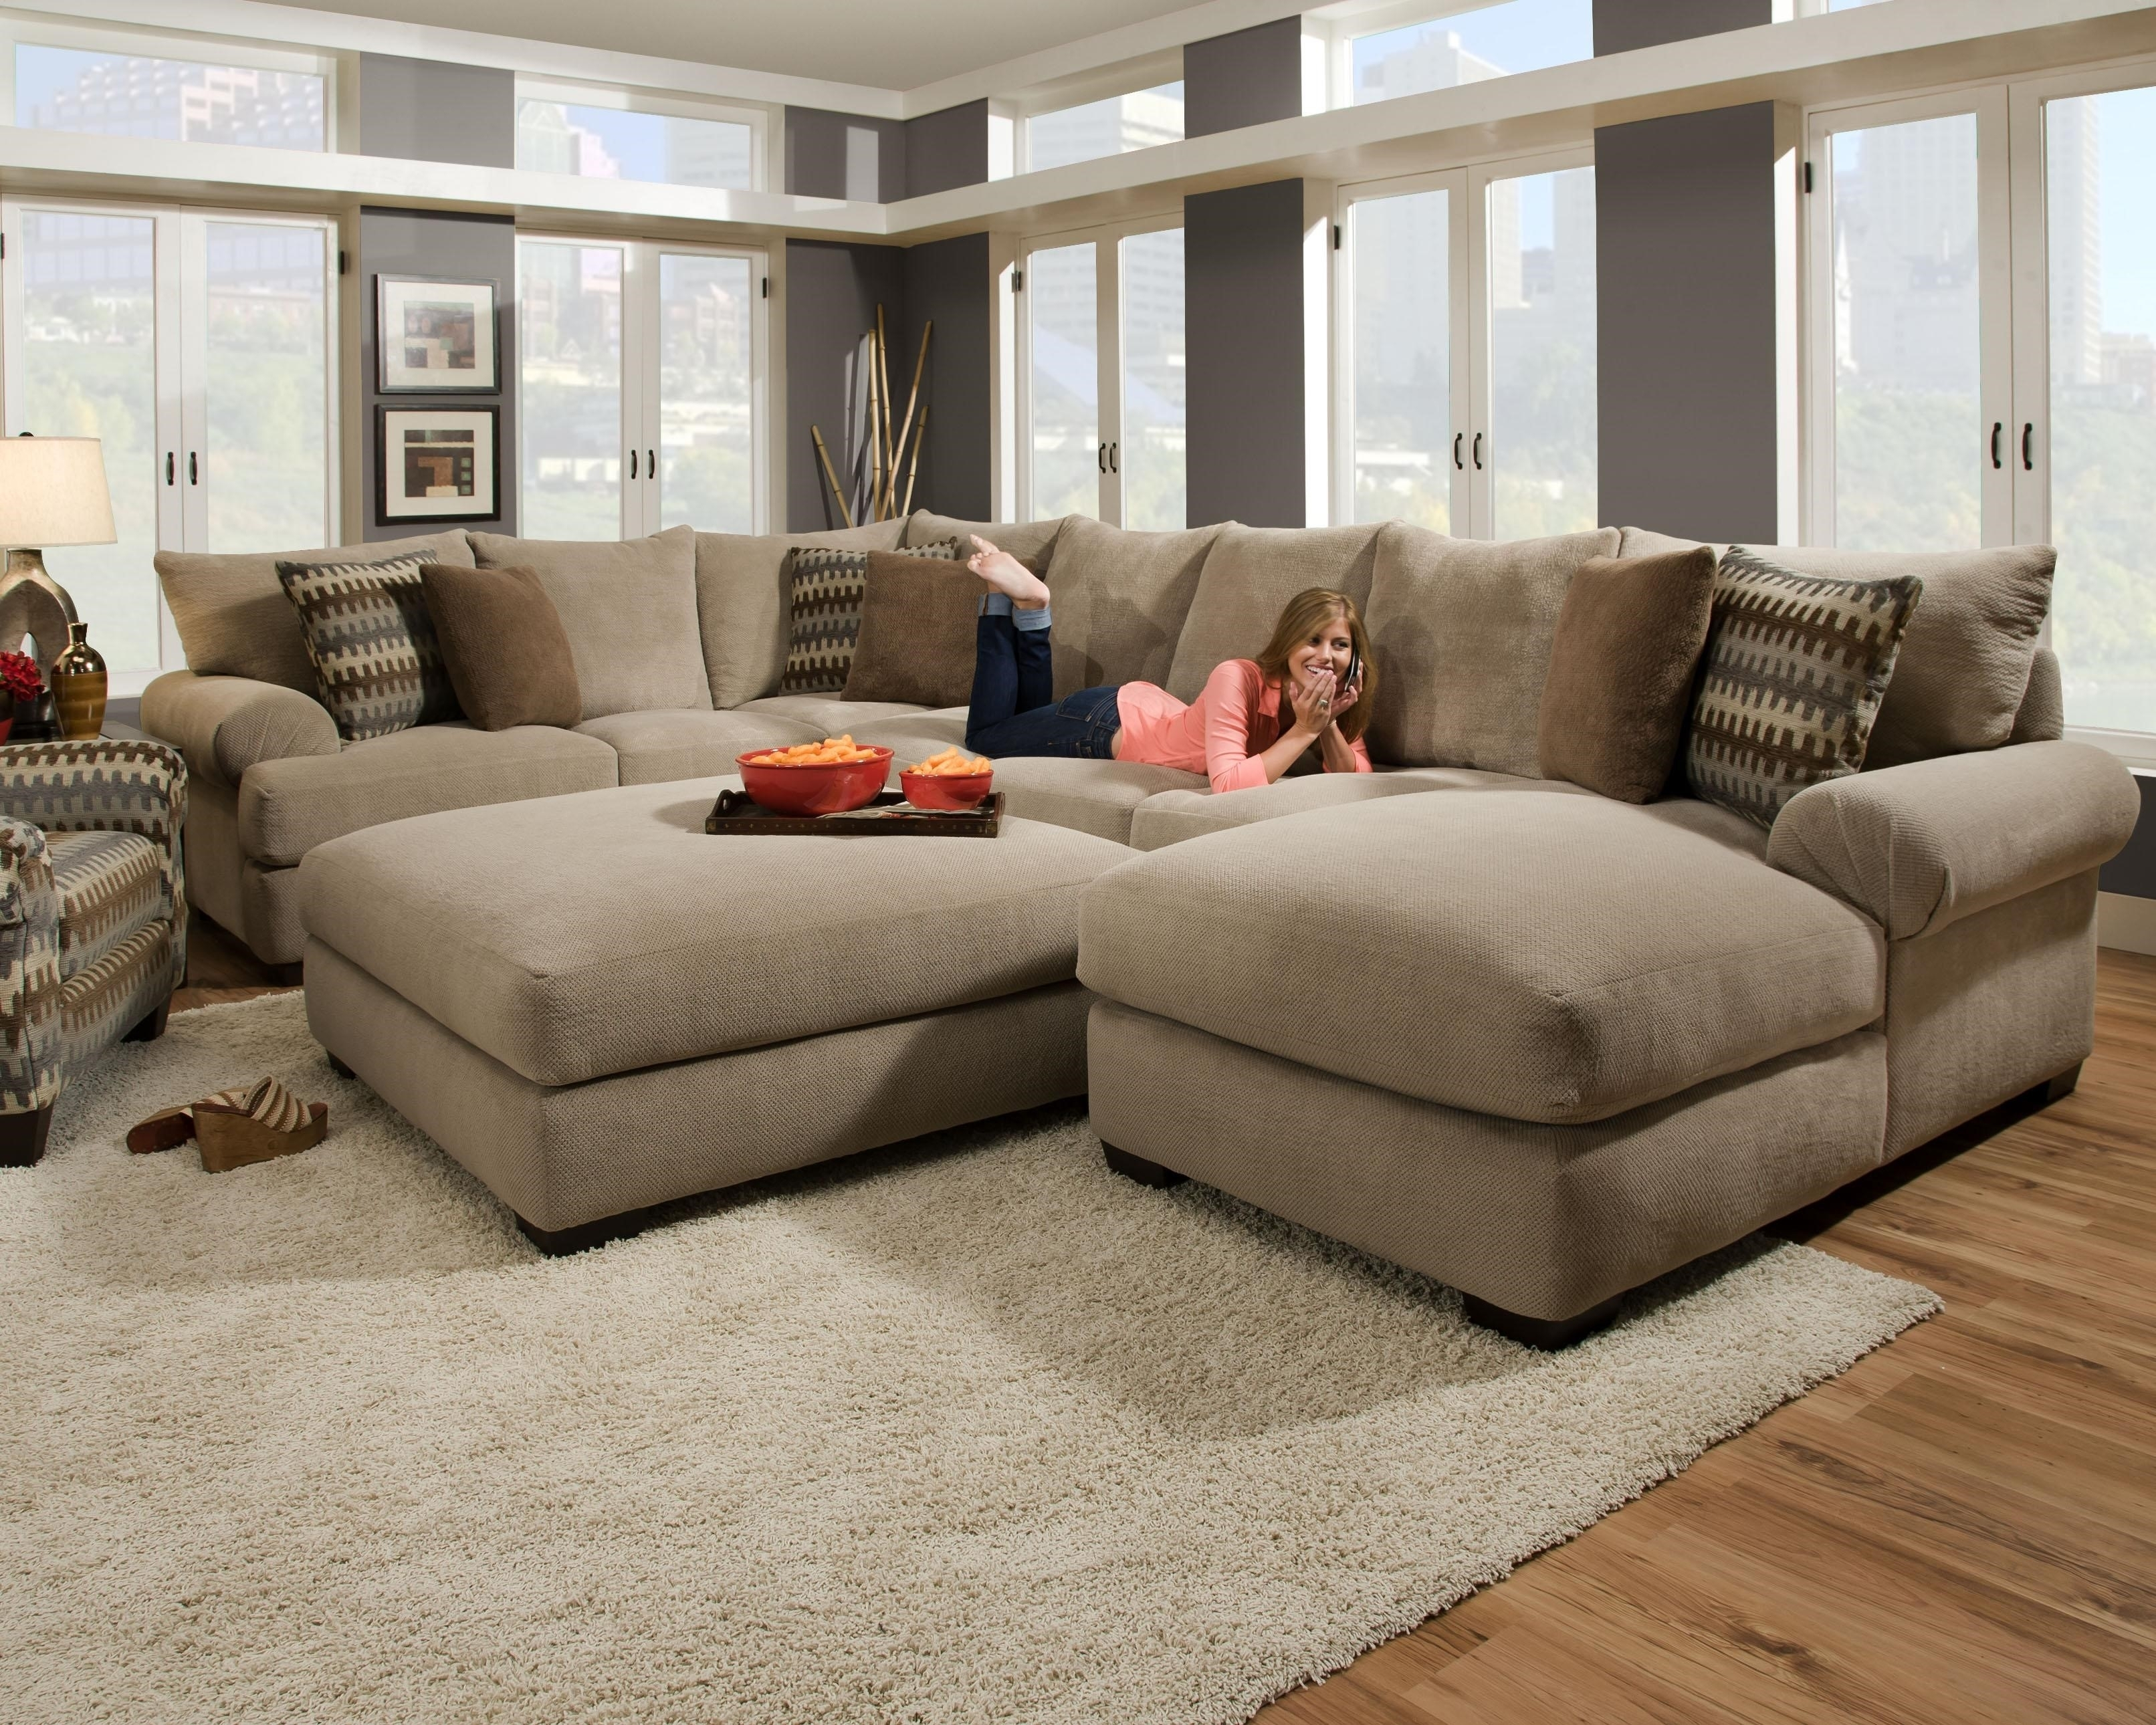 Incredible Modern Sectional Sofas Vancouver – Buildsimplehome With Regard To Vancouver Sectional Sofas (Image 7 of 10)